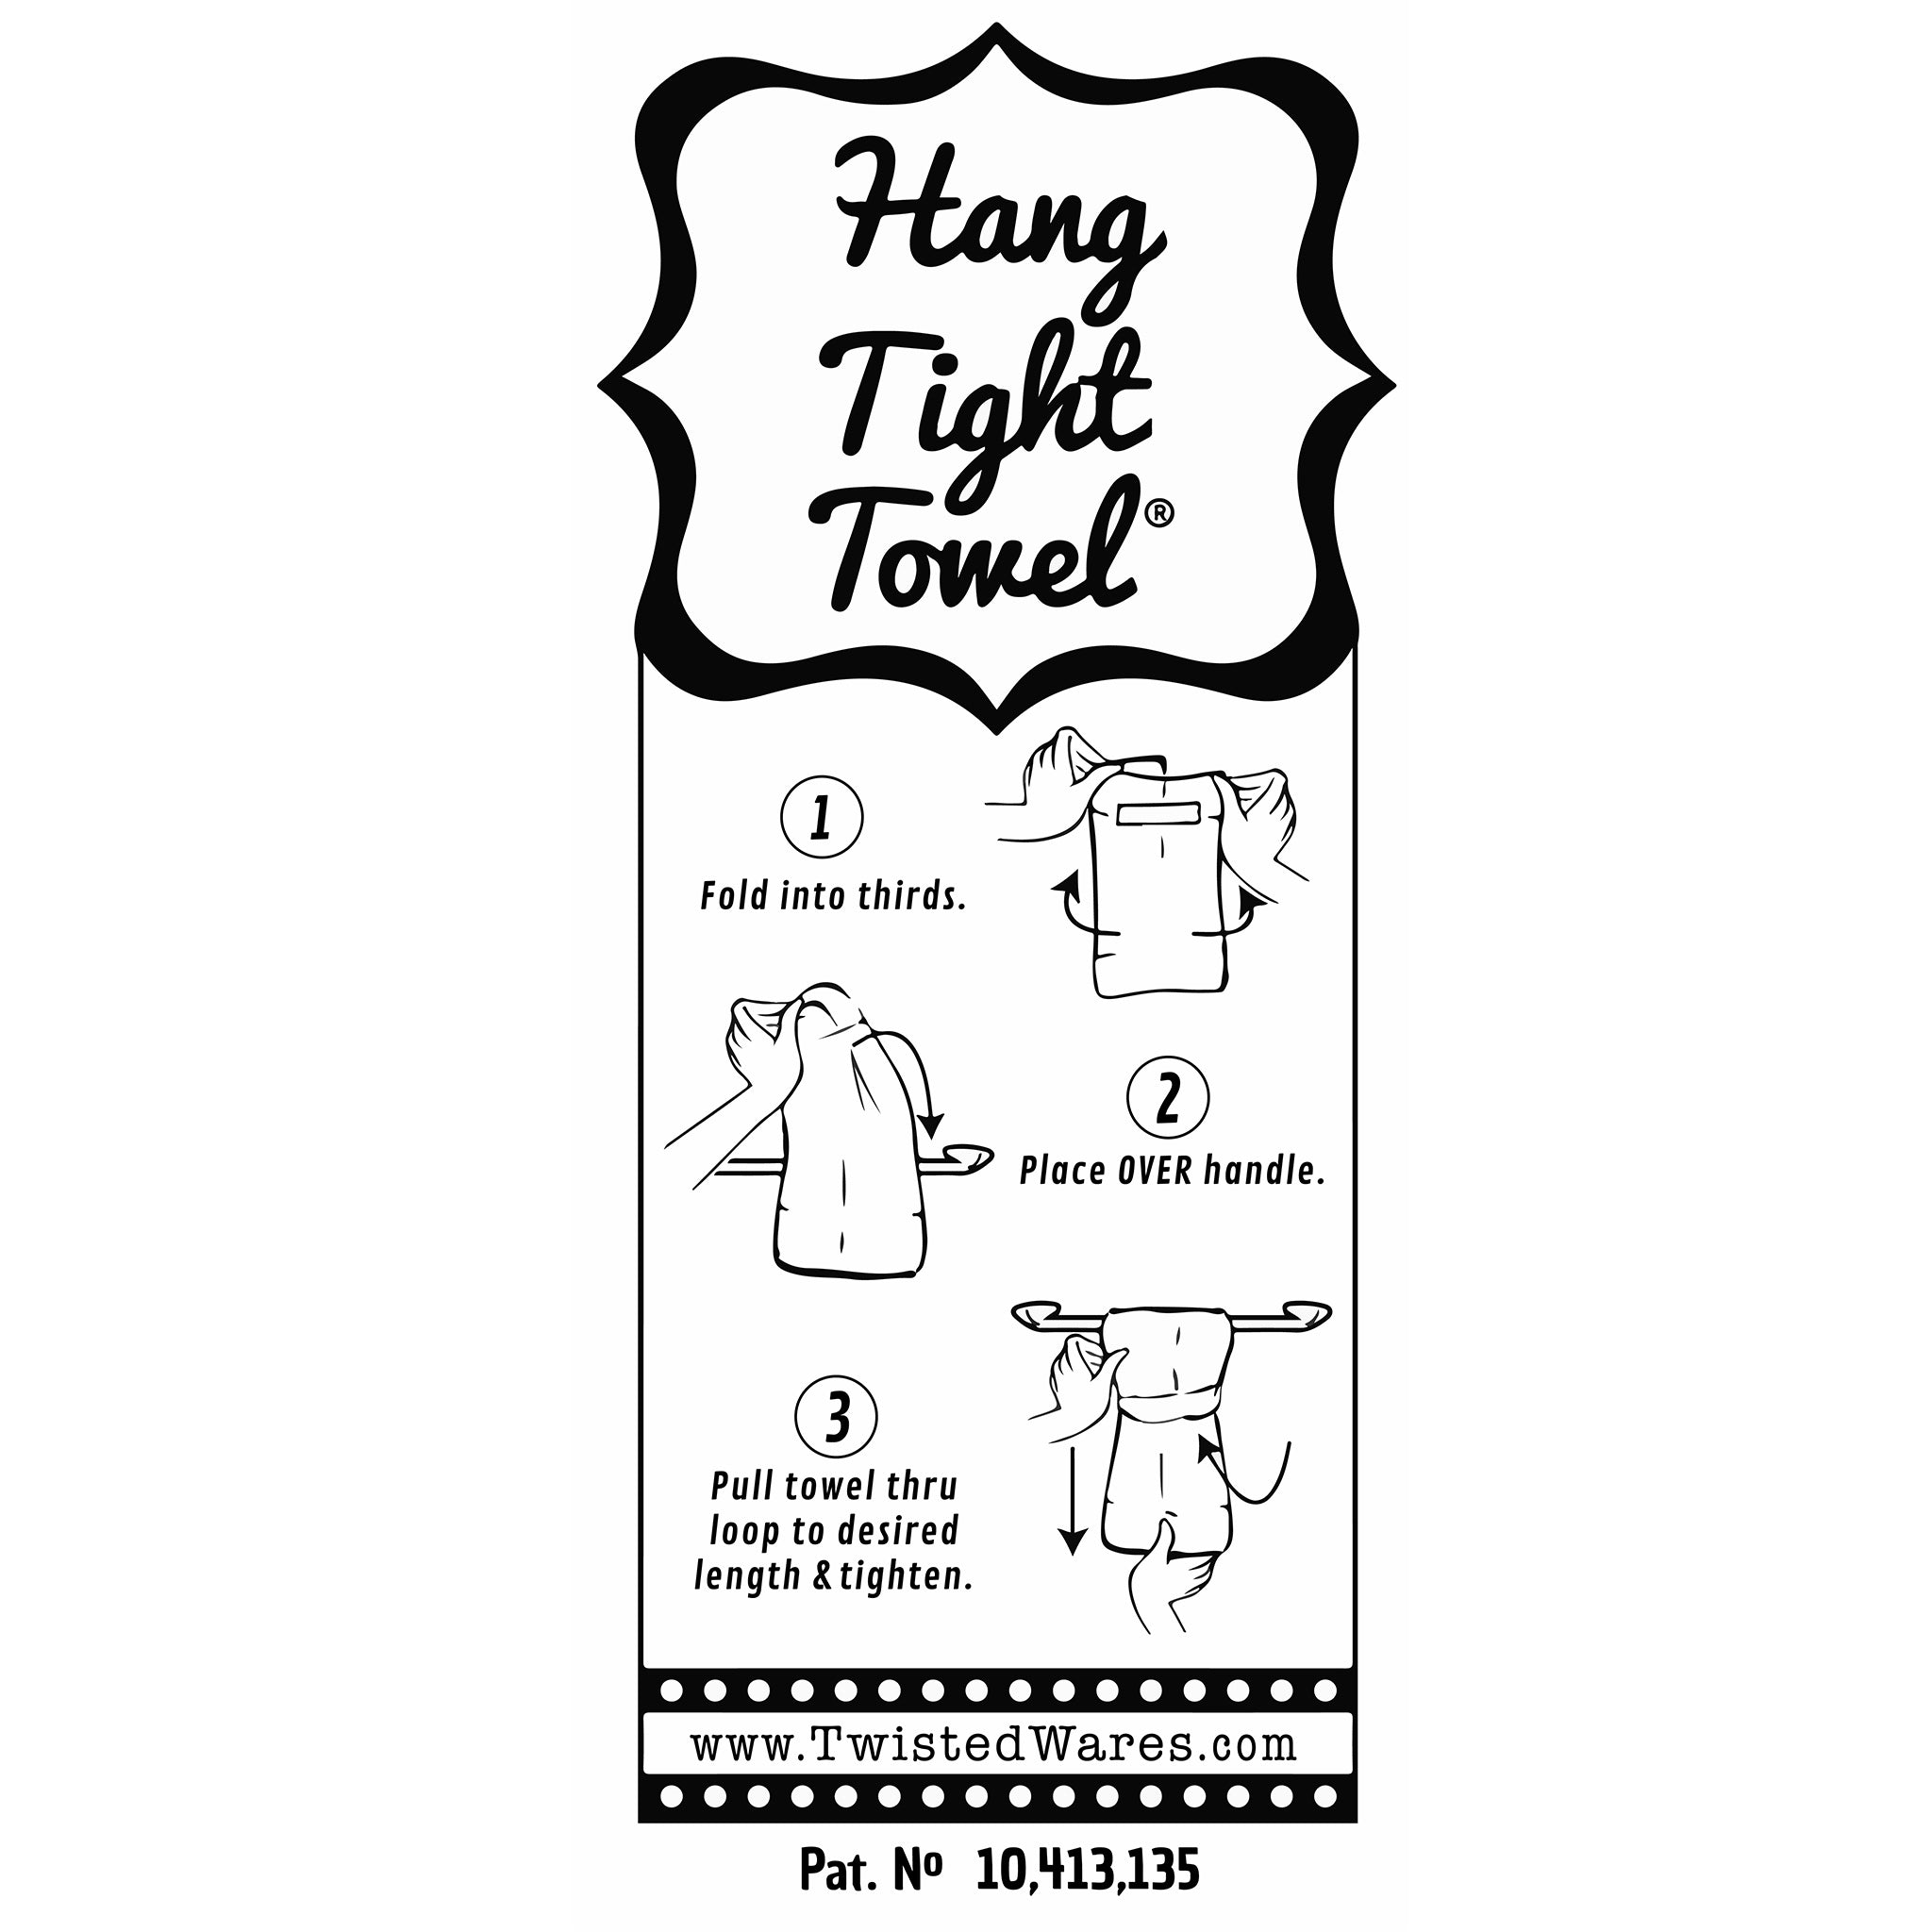 If You Stir it, You Can Call it Homemade Flour Sack Hang Tight Towel®